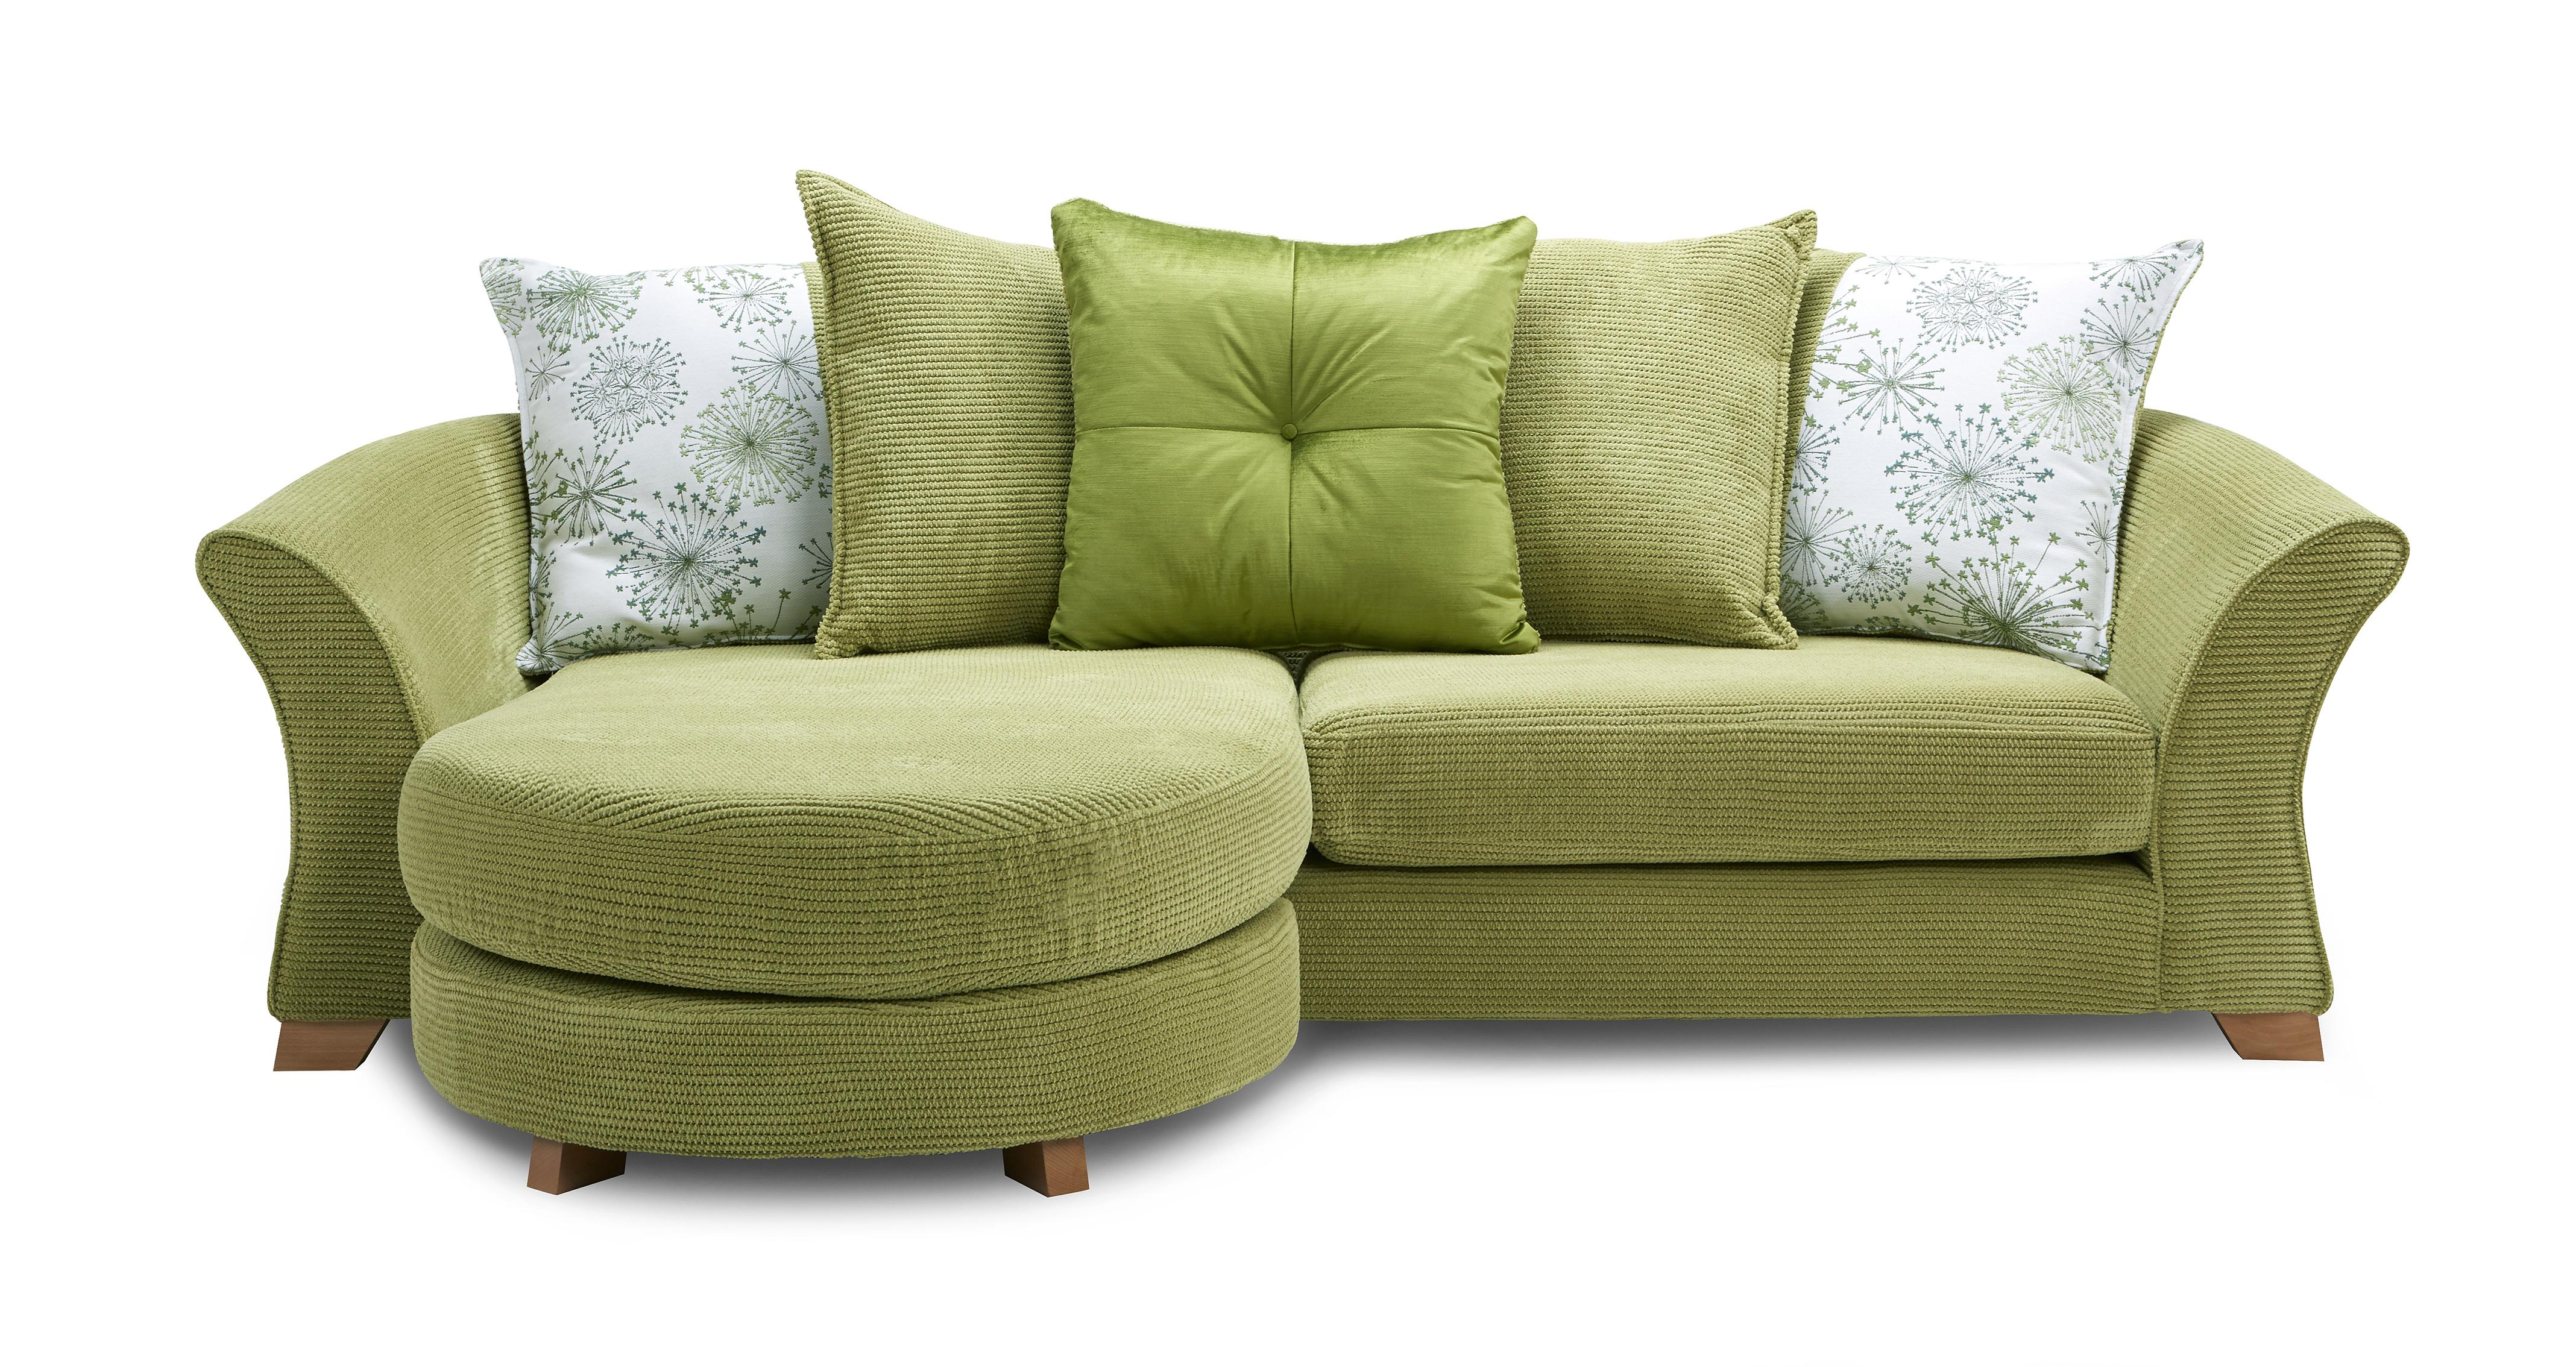 sofa cushion replacements uk 2 seater brown bed dfs replacement brokeasshome